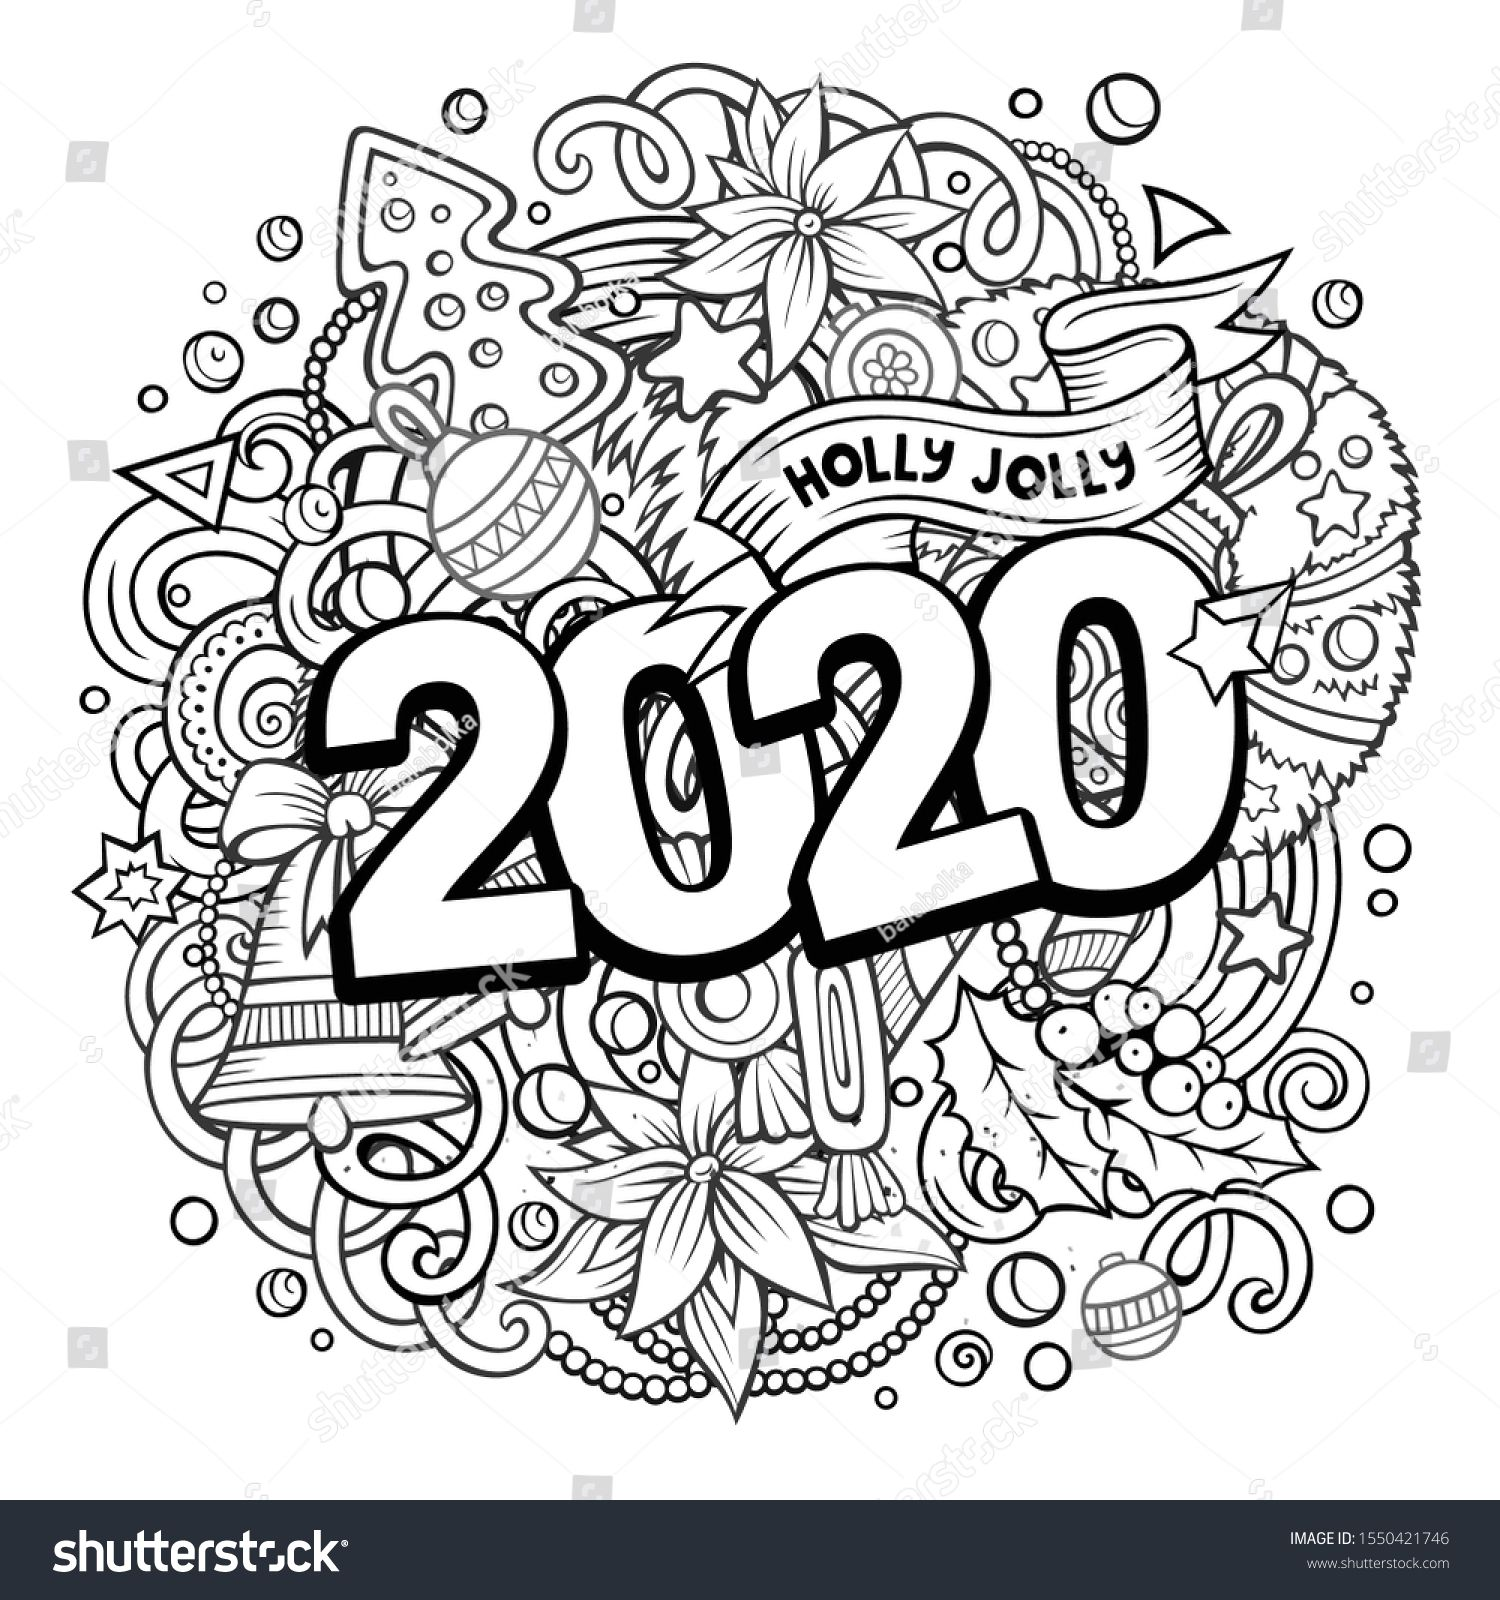 2020 Hand Drawn Doodles Illustration New Year Objects And Elements Poster Design Creative Cartoon Doodle Illustration Love Coloring Pages Doodle Art Designs